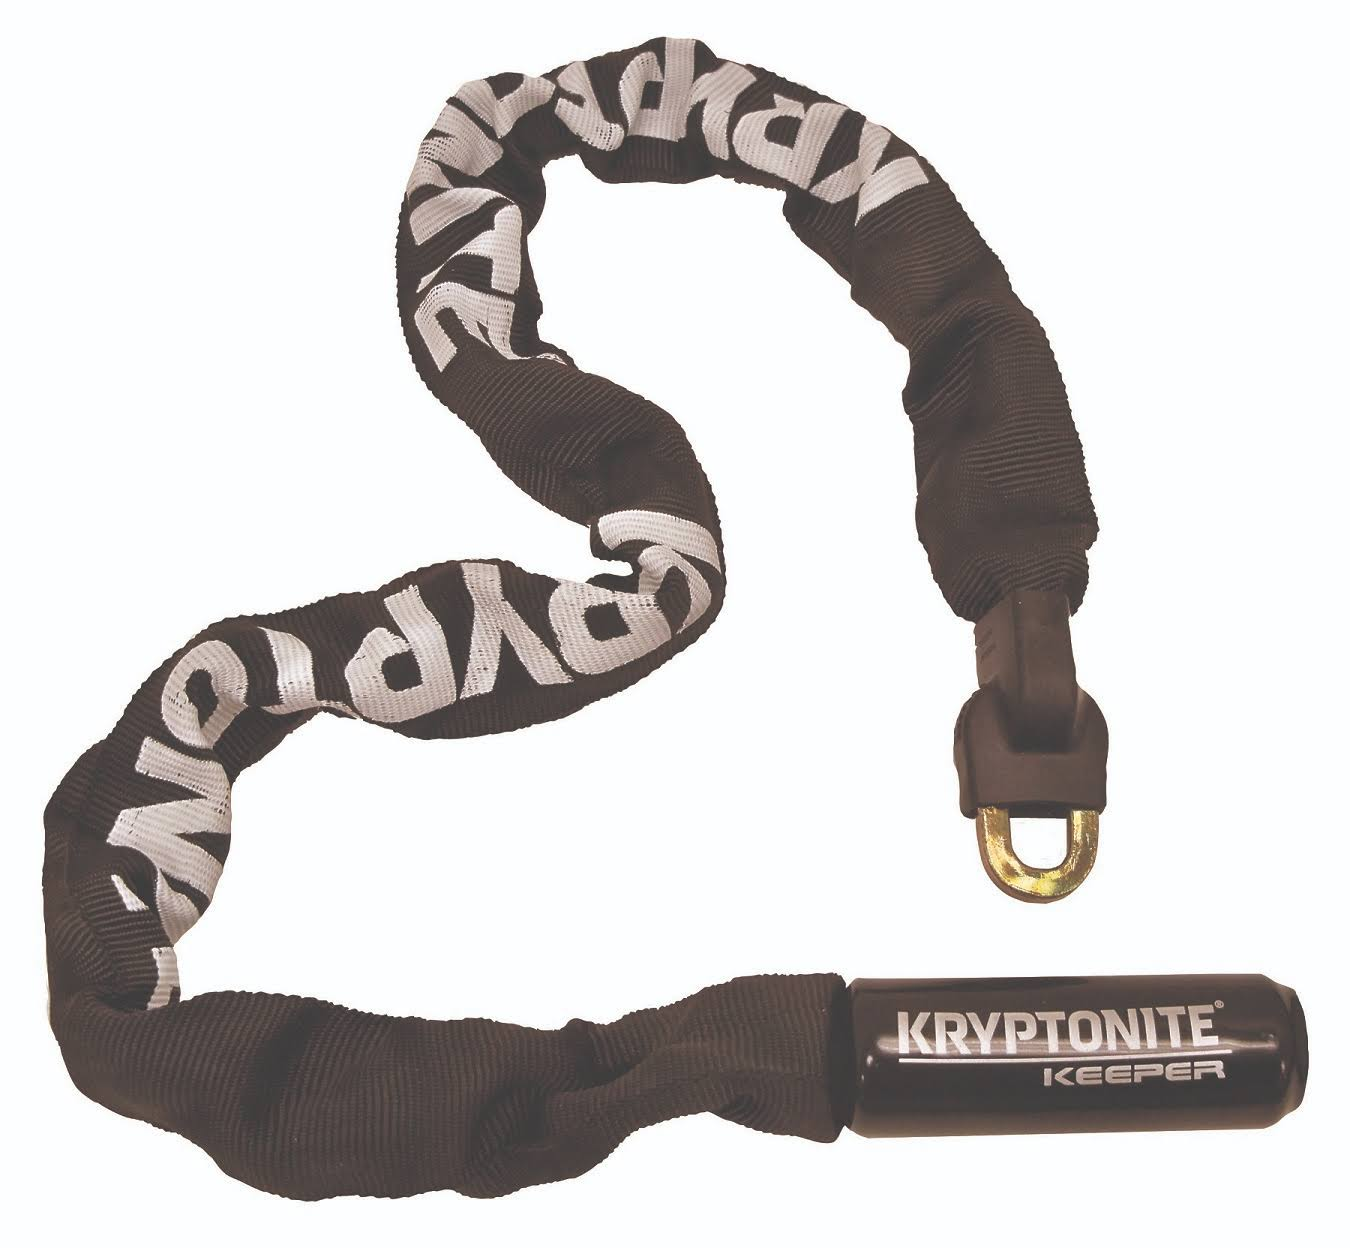 Kryptonite Keeper Integrated Chain Bicycle Lock (32-Inch)